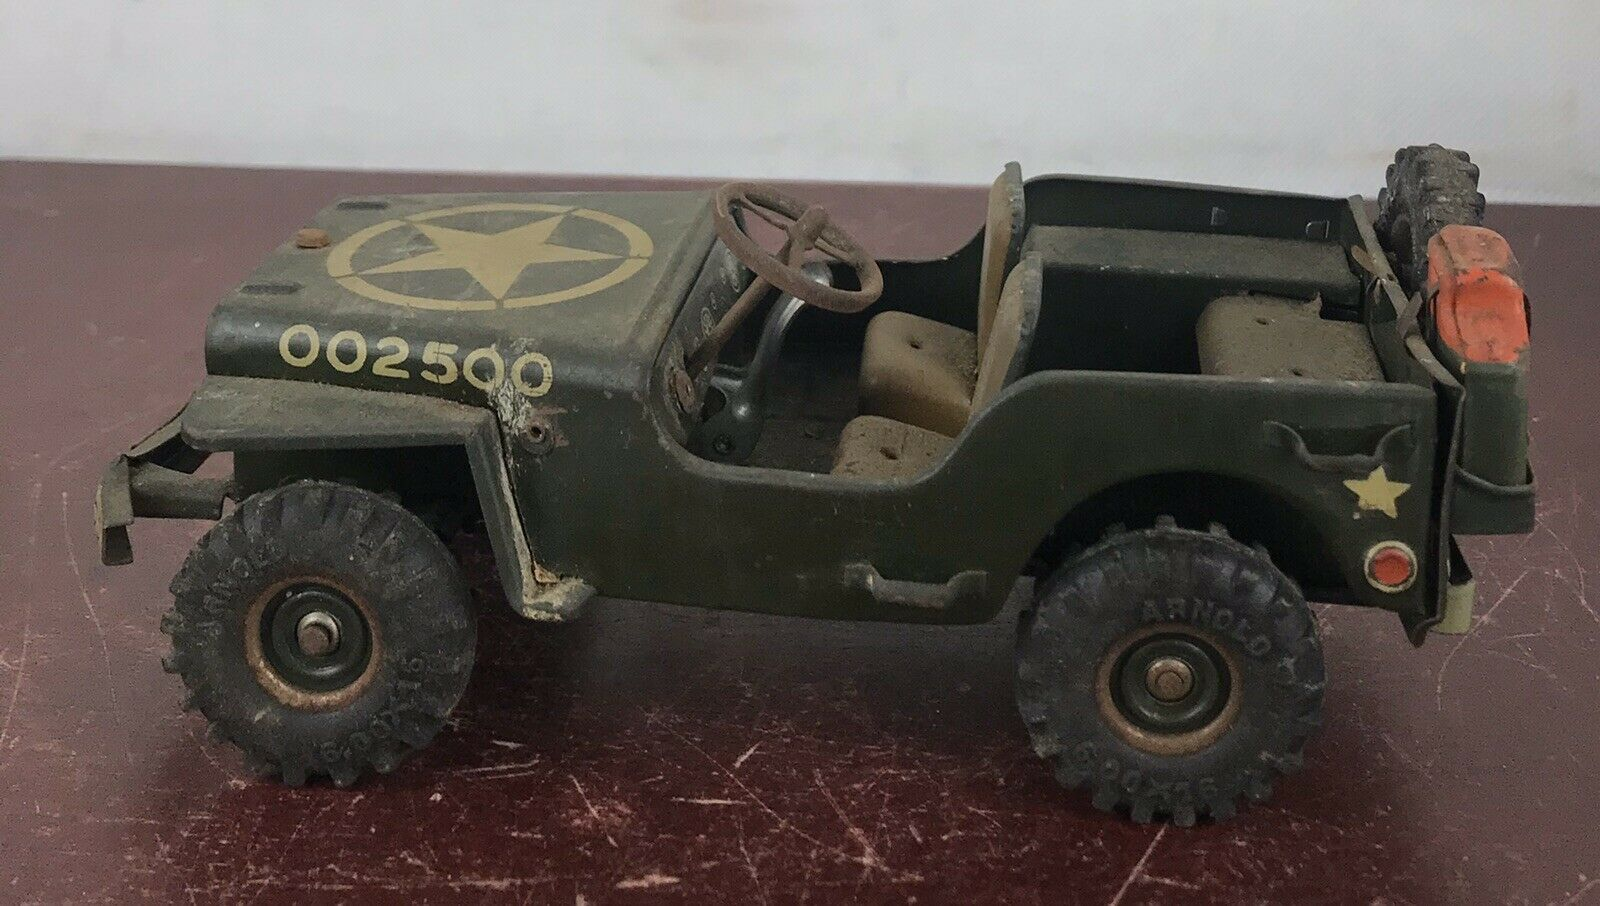 Vintage Arnold Toy Military US Army 1949  Jeep US Zone Germany 002500